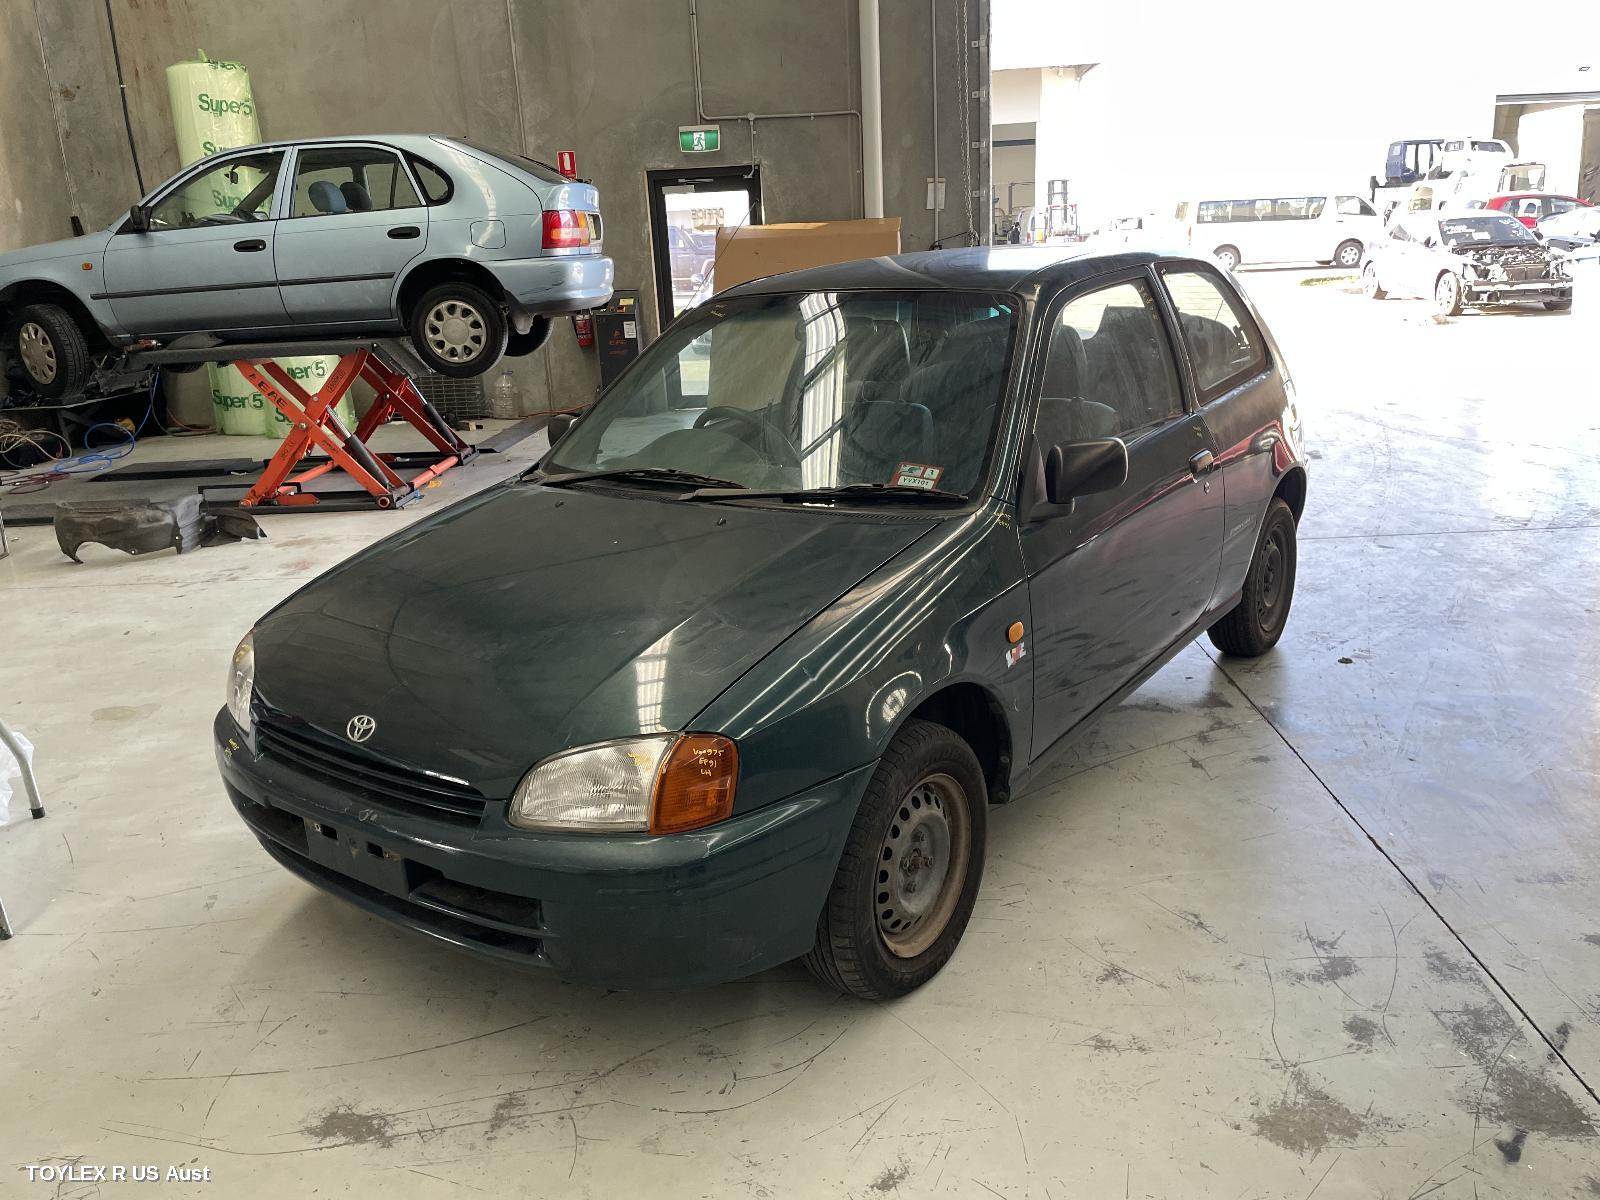 Toyota STARLET EP91R 4E-FE 1.3L Engine FWD 5 Speed Manual Gearbox 03/96-09/99